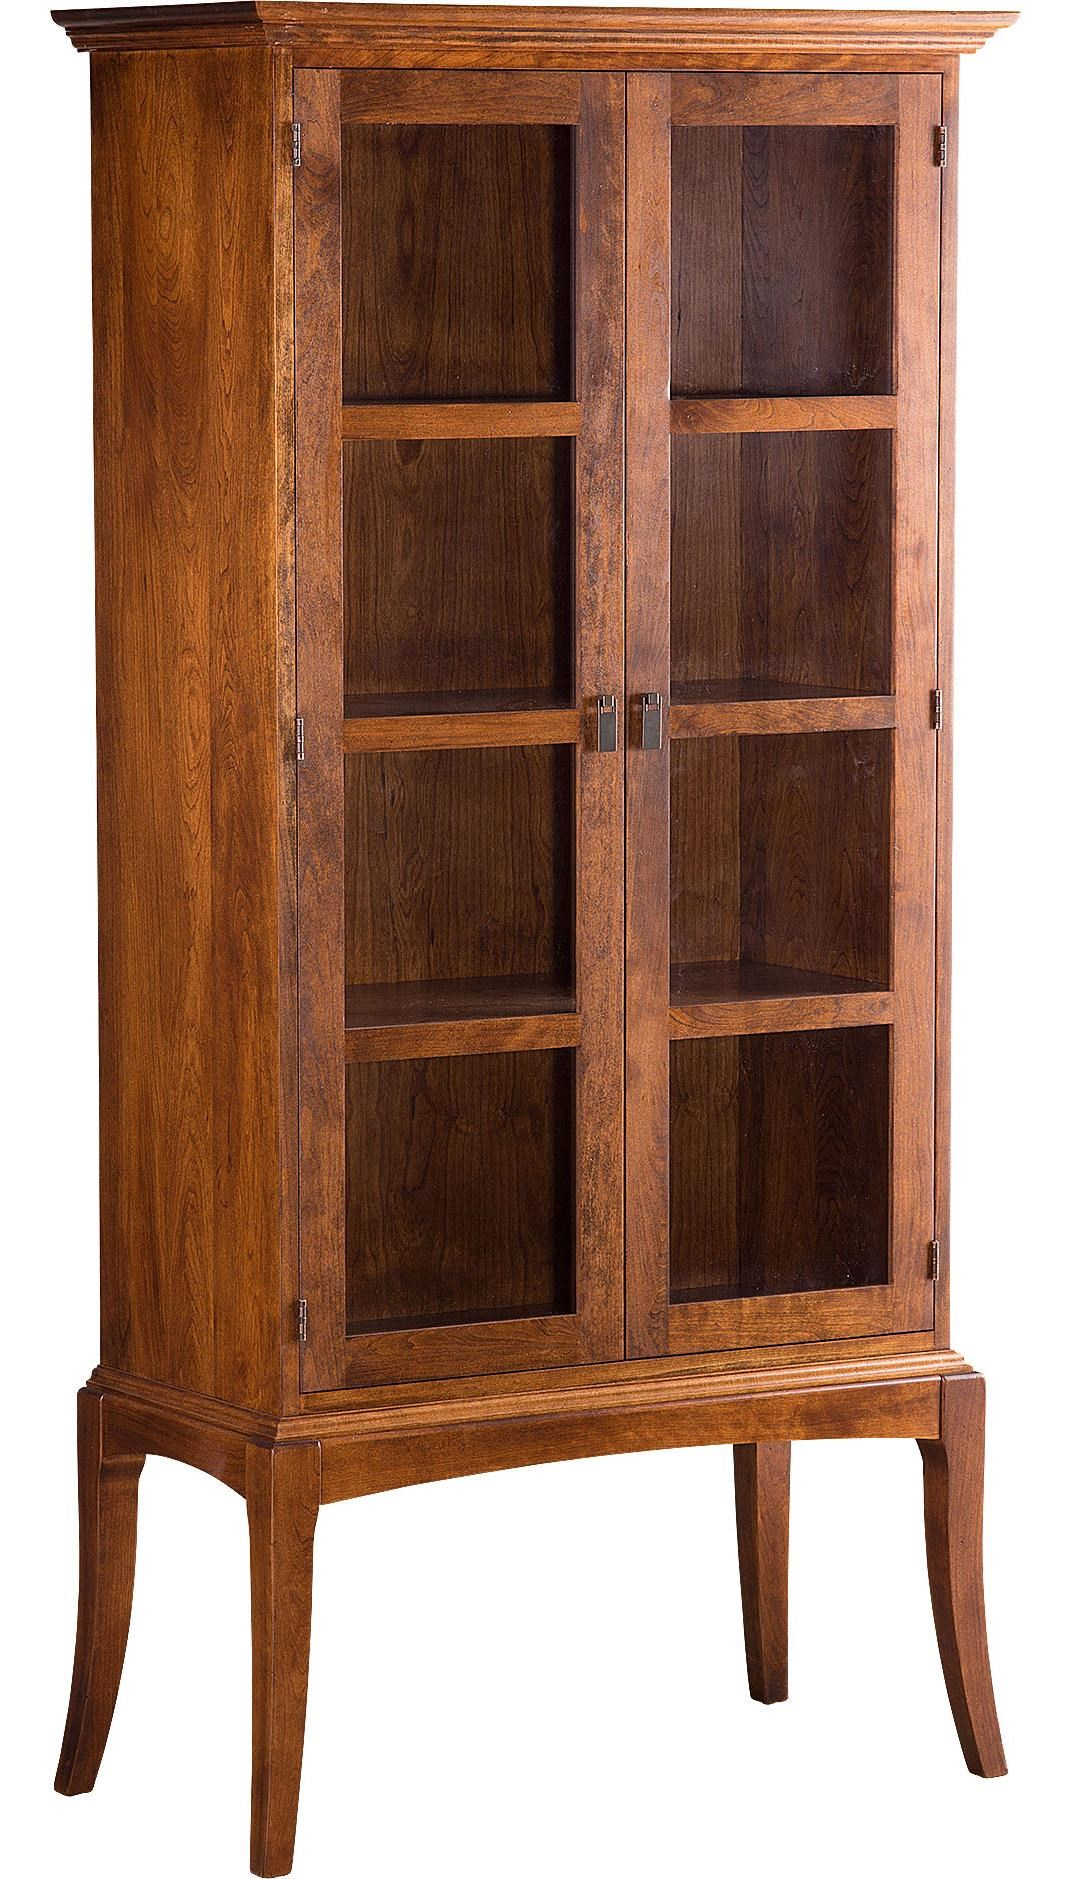 Greenbrier Sabin Bookcase With Glass Doors And Cabriole Legs